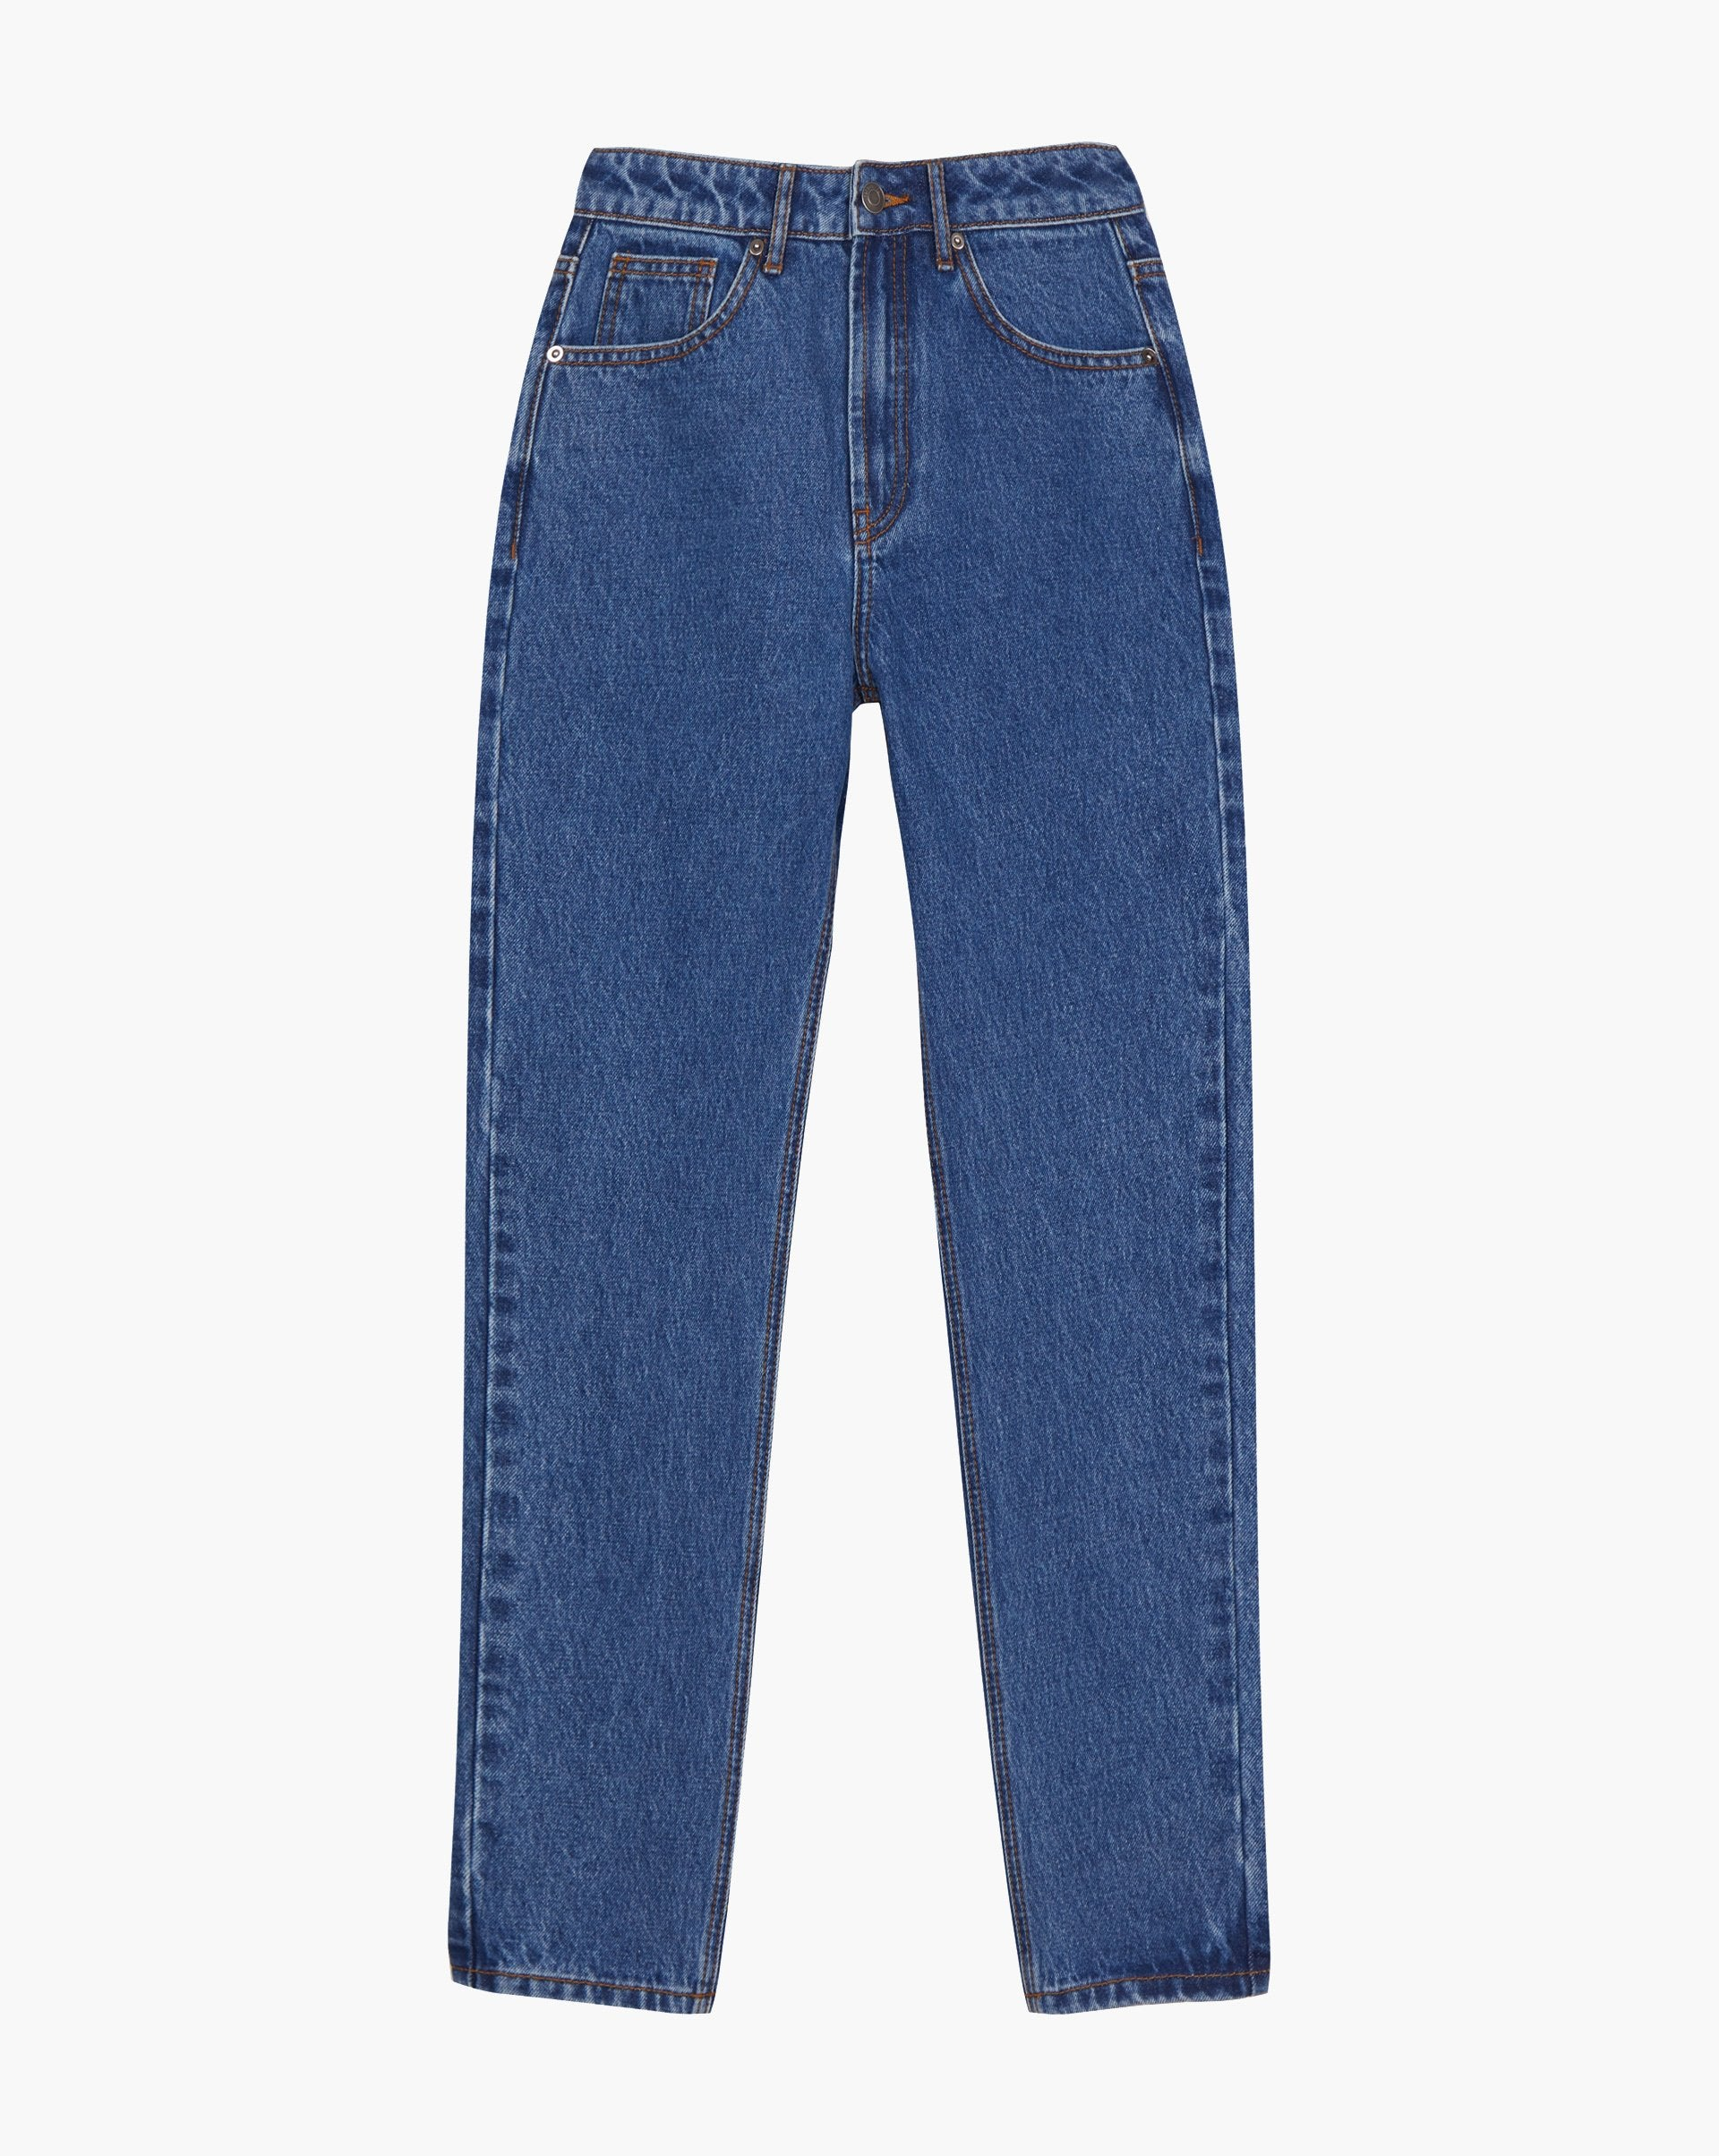 Relaxed fit straight leg jeans - 12 STOREEZ